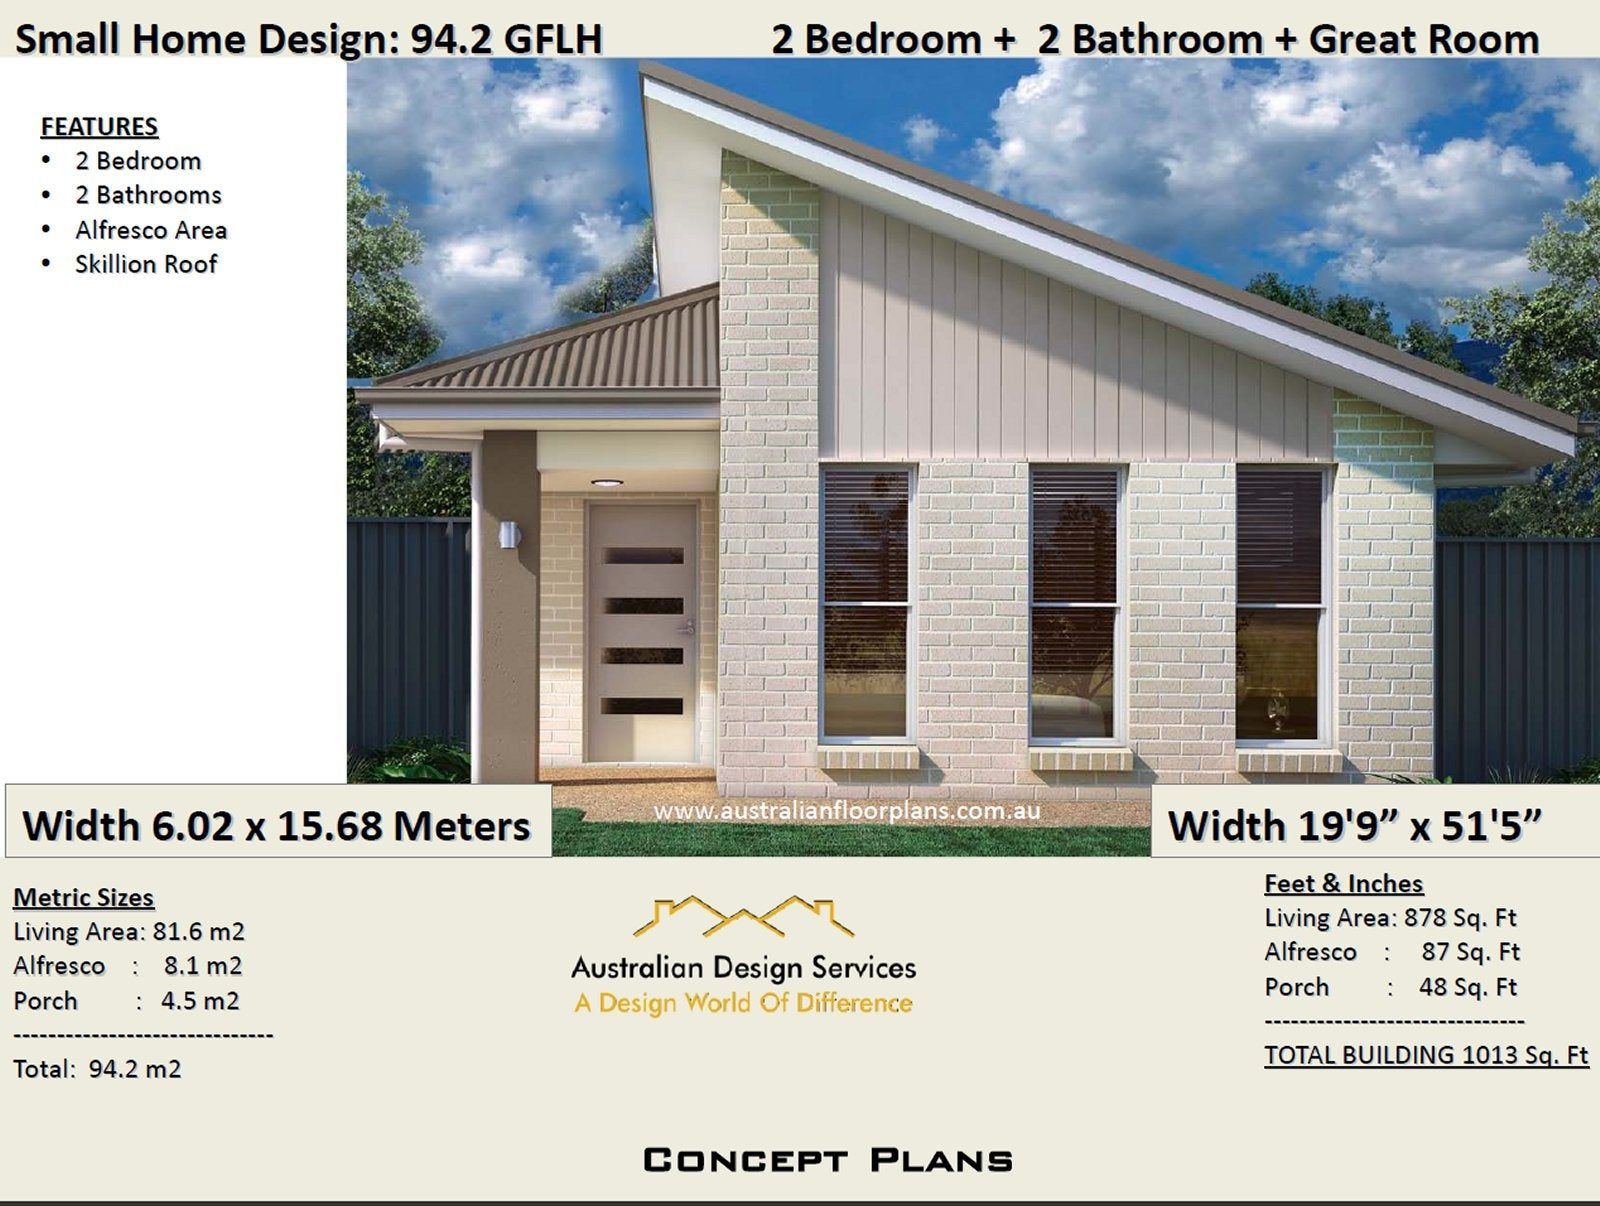 Small House Plan 1000 Sq Foot 94 2 Sq Meters 2 Bedroom Etsy House Plans For Sale House Plans Australia Small House